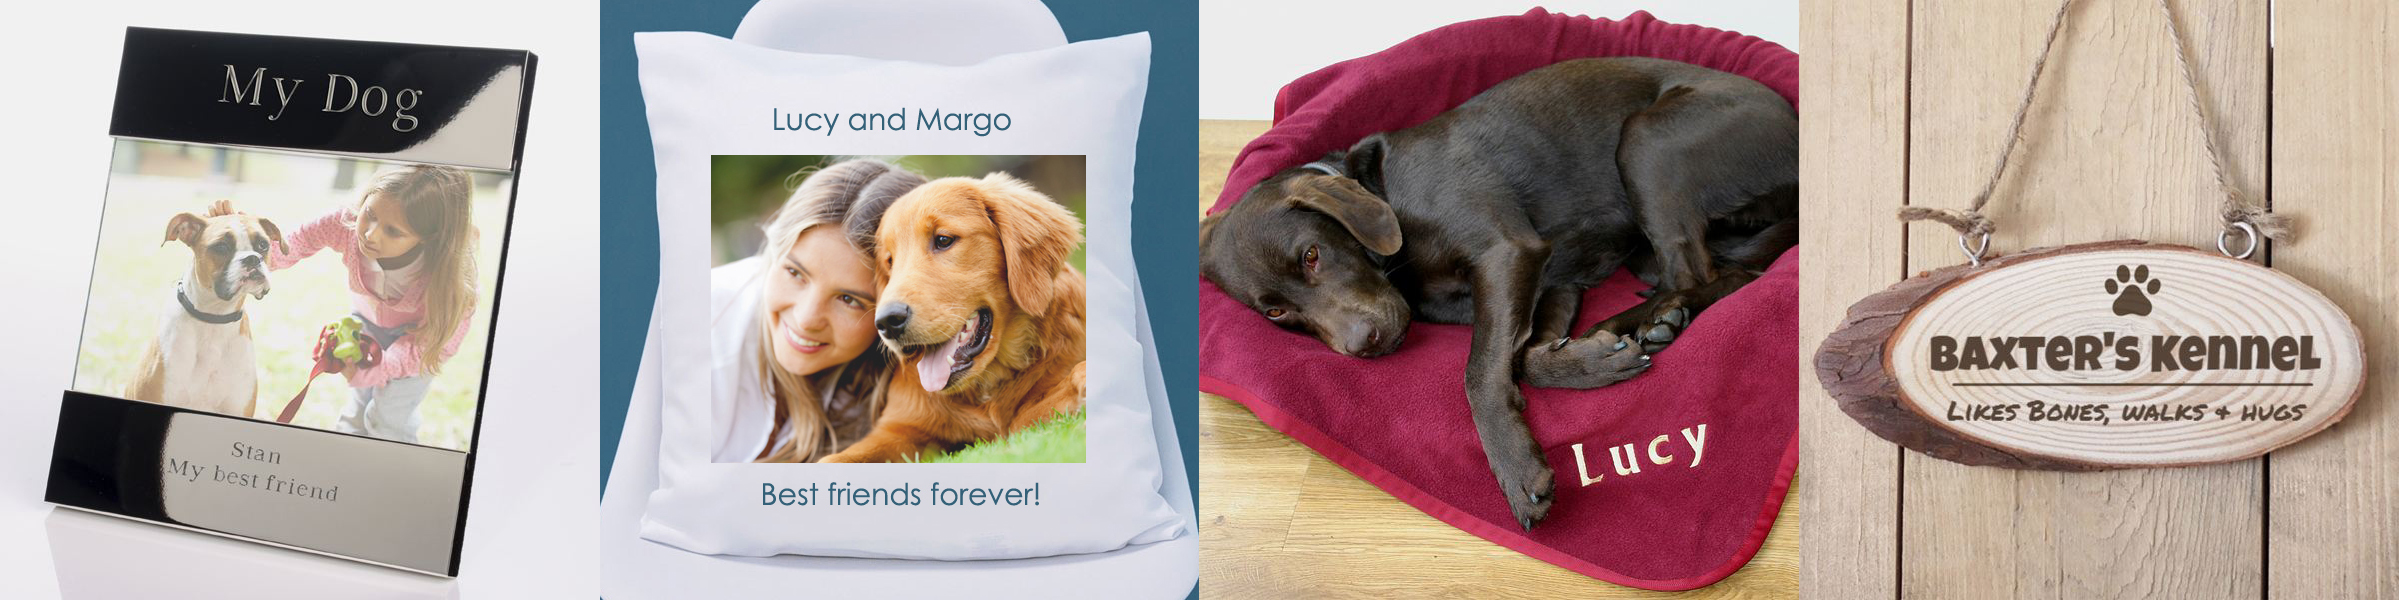 Personalised gifts for Dog lovers